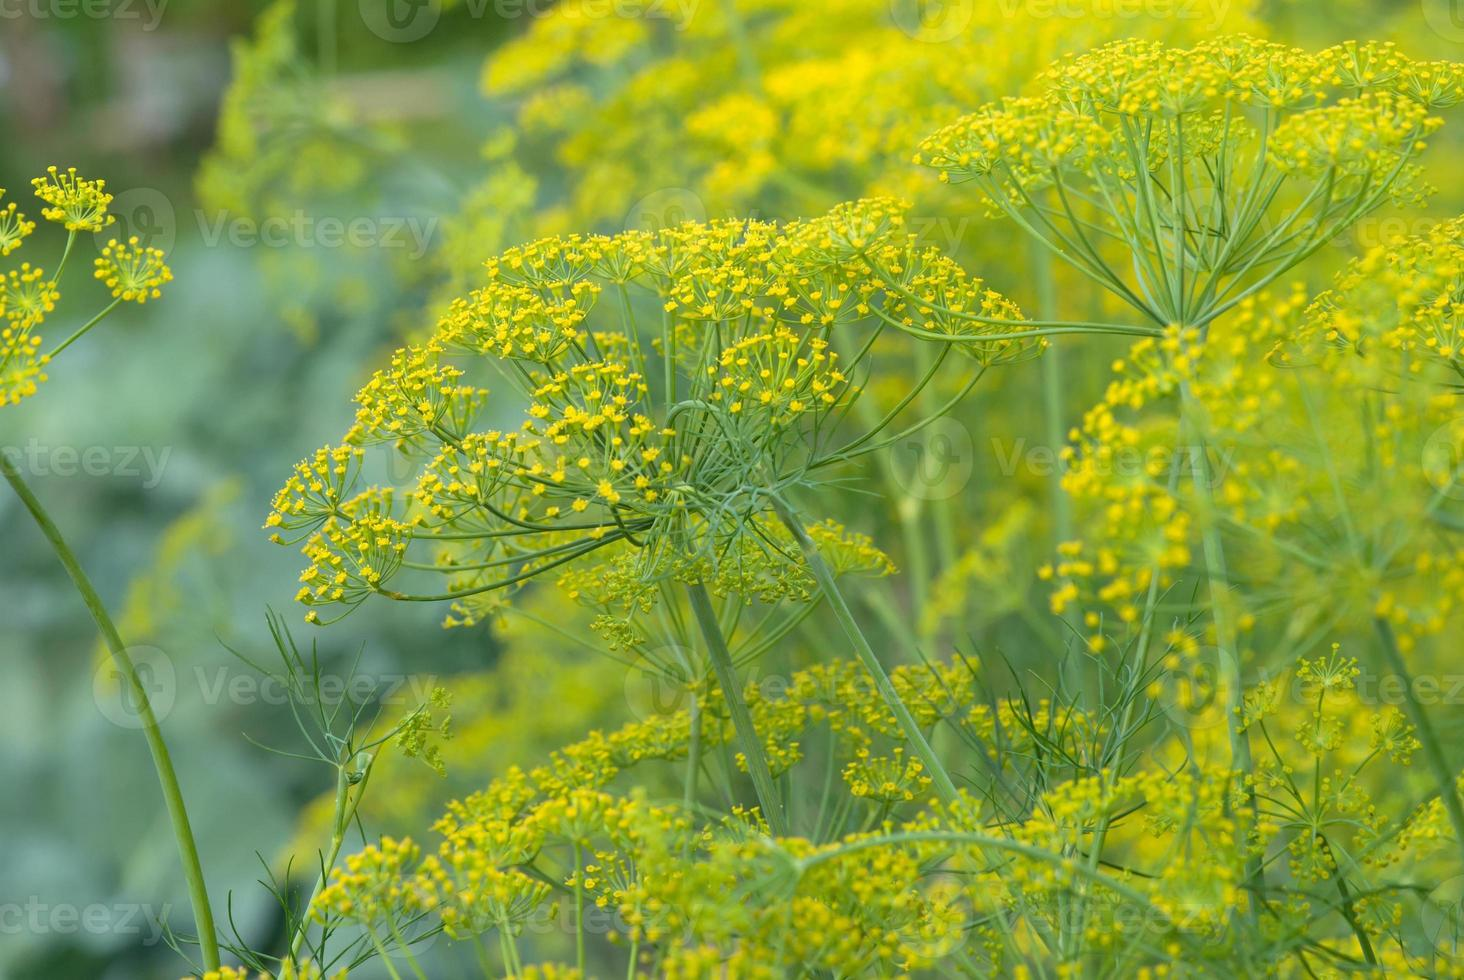 Dill flowers close-up photo